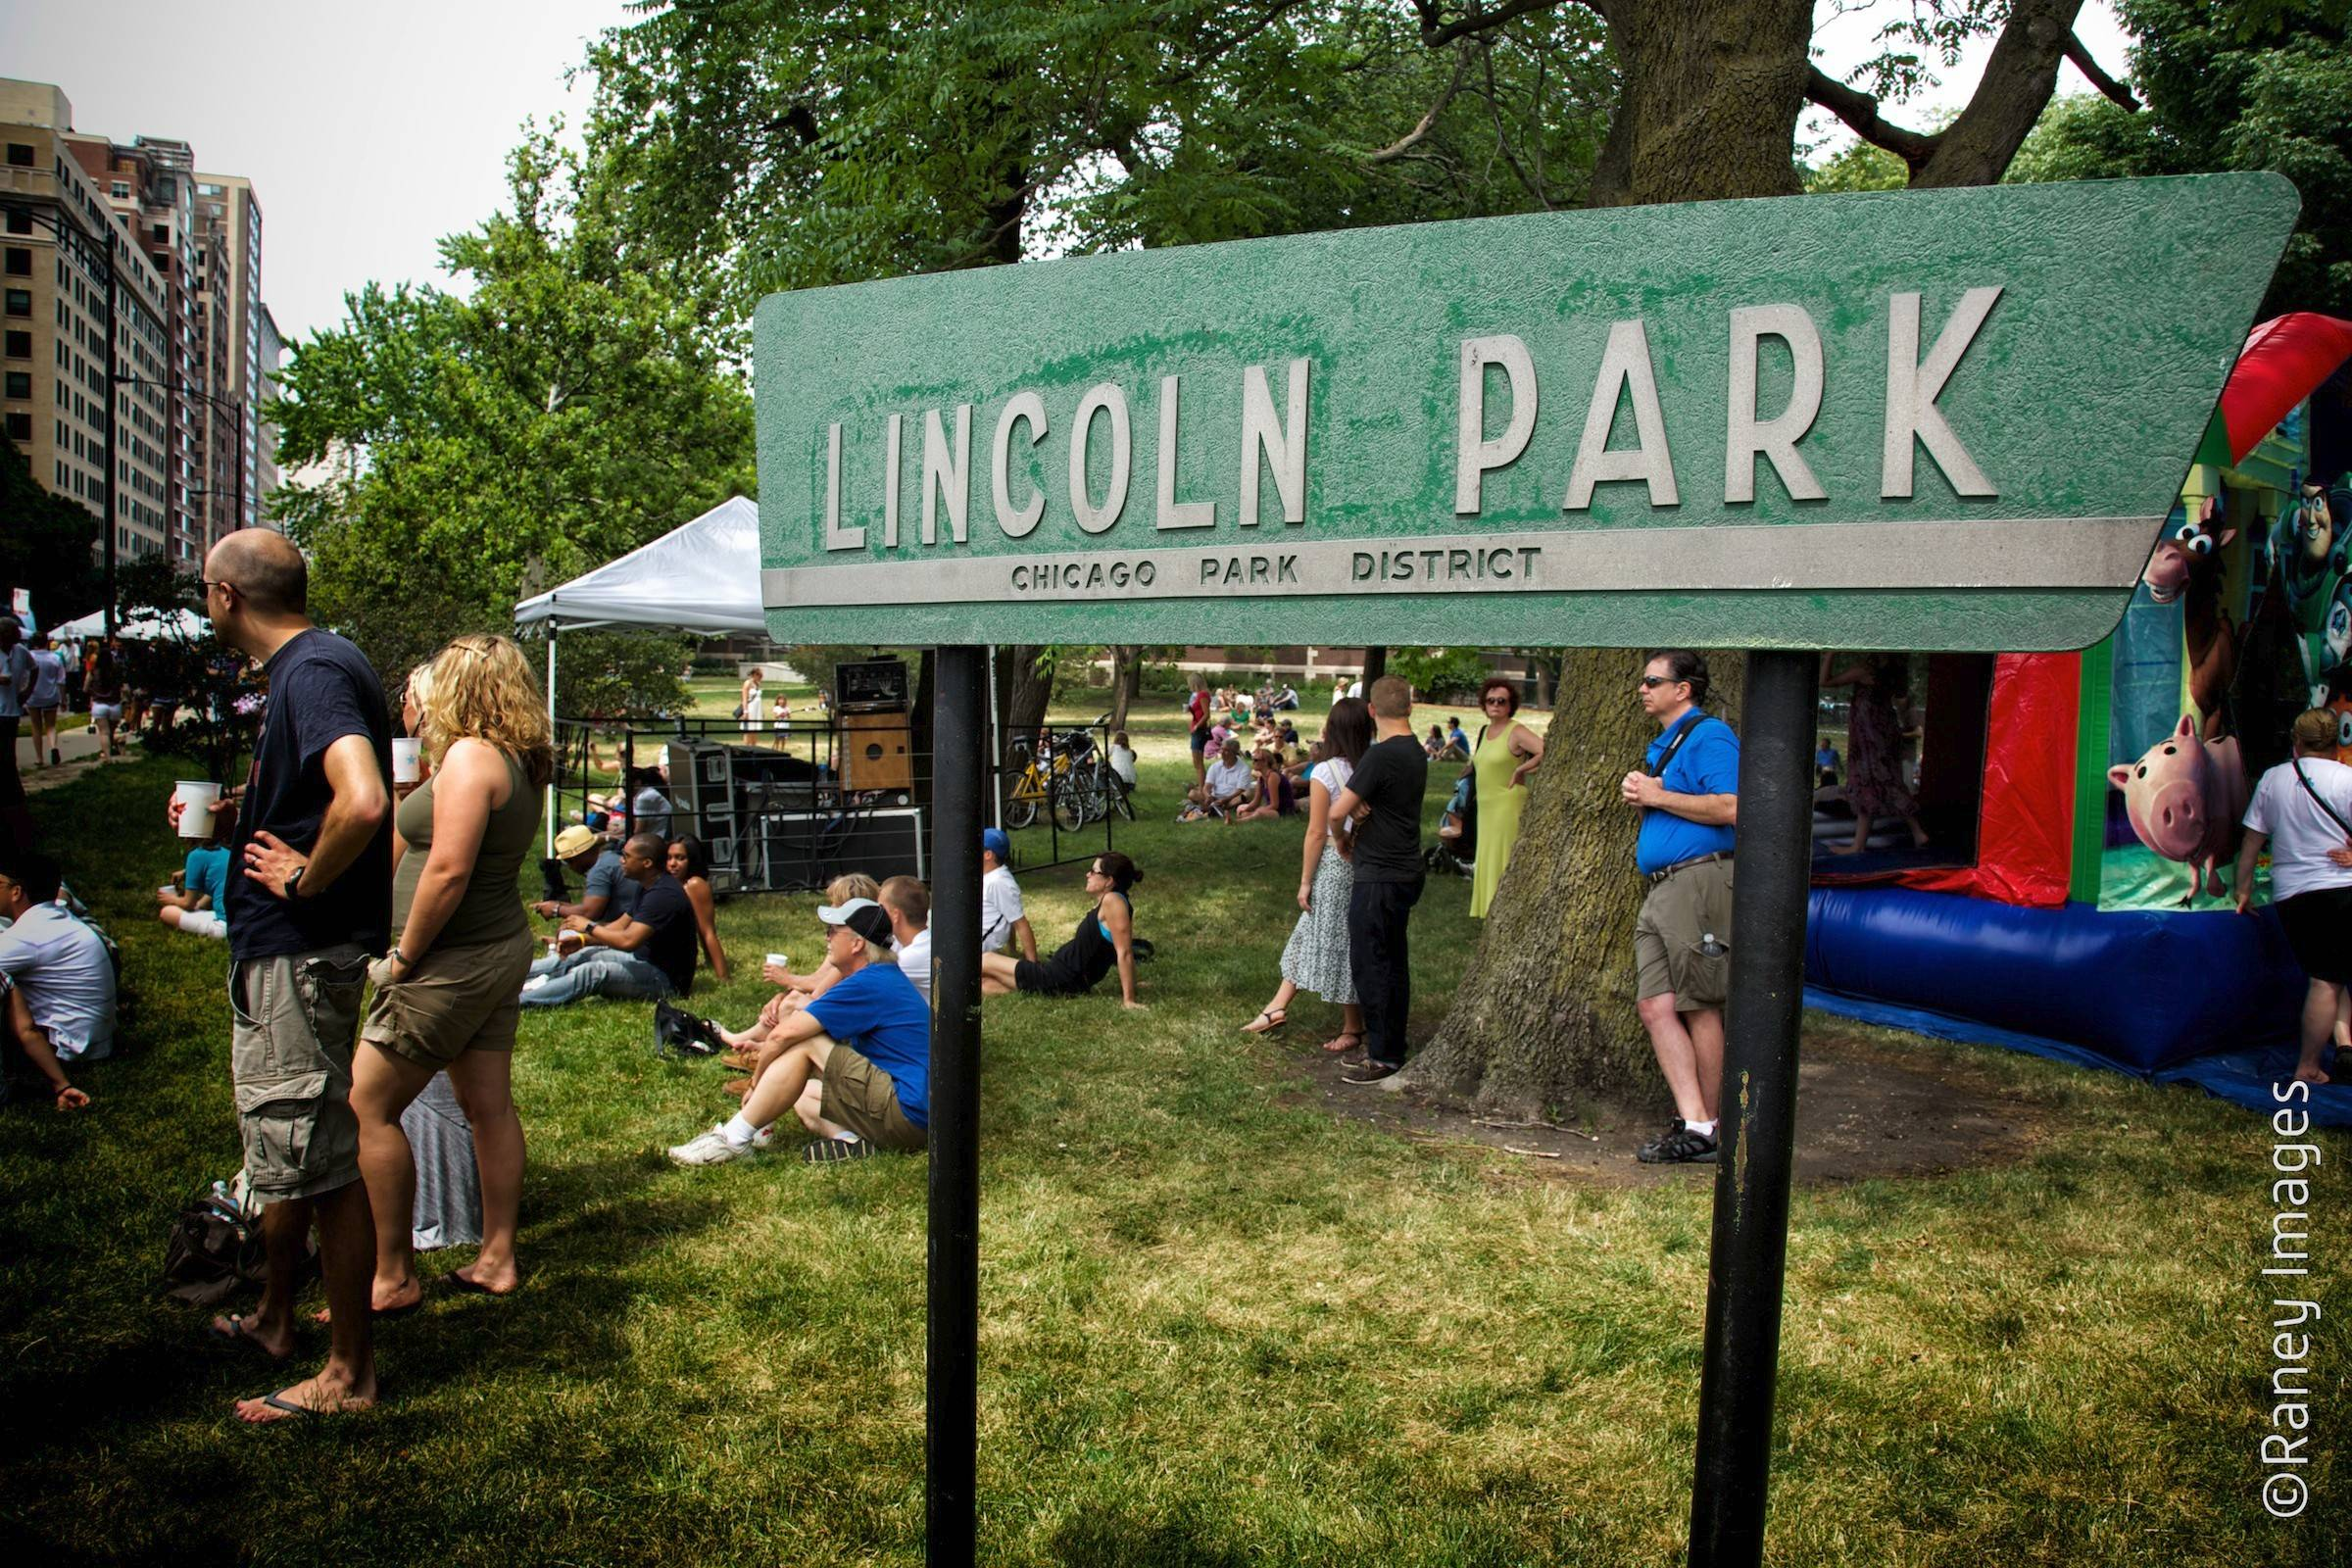 Chicago's Summerfest takes place in the Lincoln Park neighborhood June 28-29.